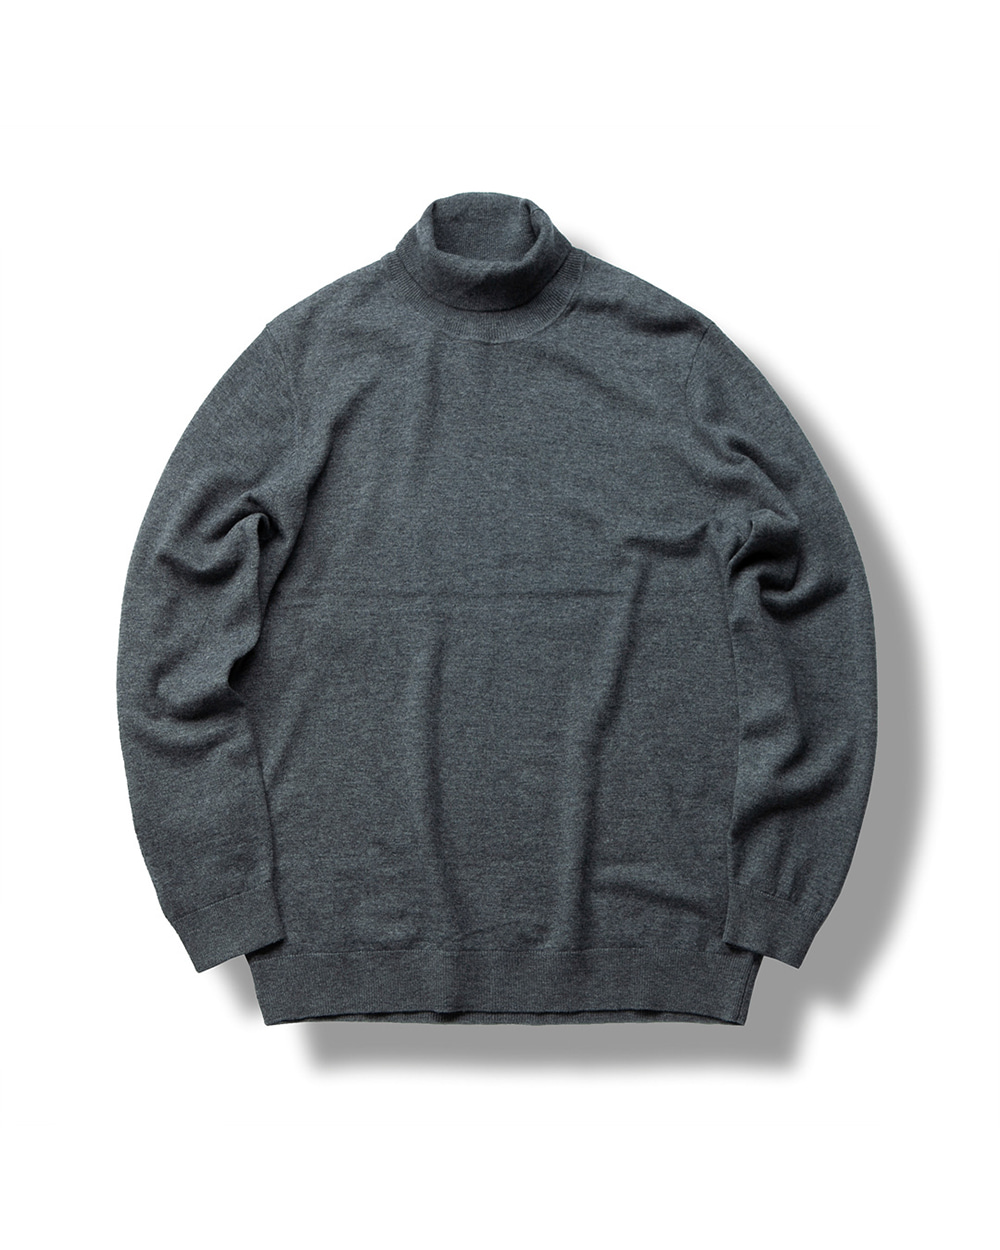 MERINO WOOL TURTLENECK SWEATER GRAY